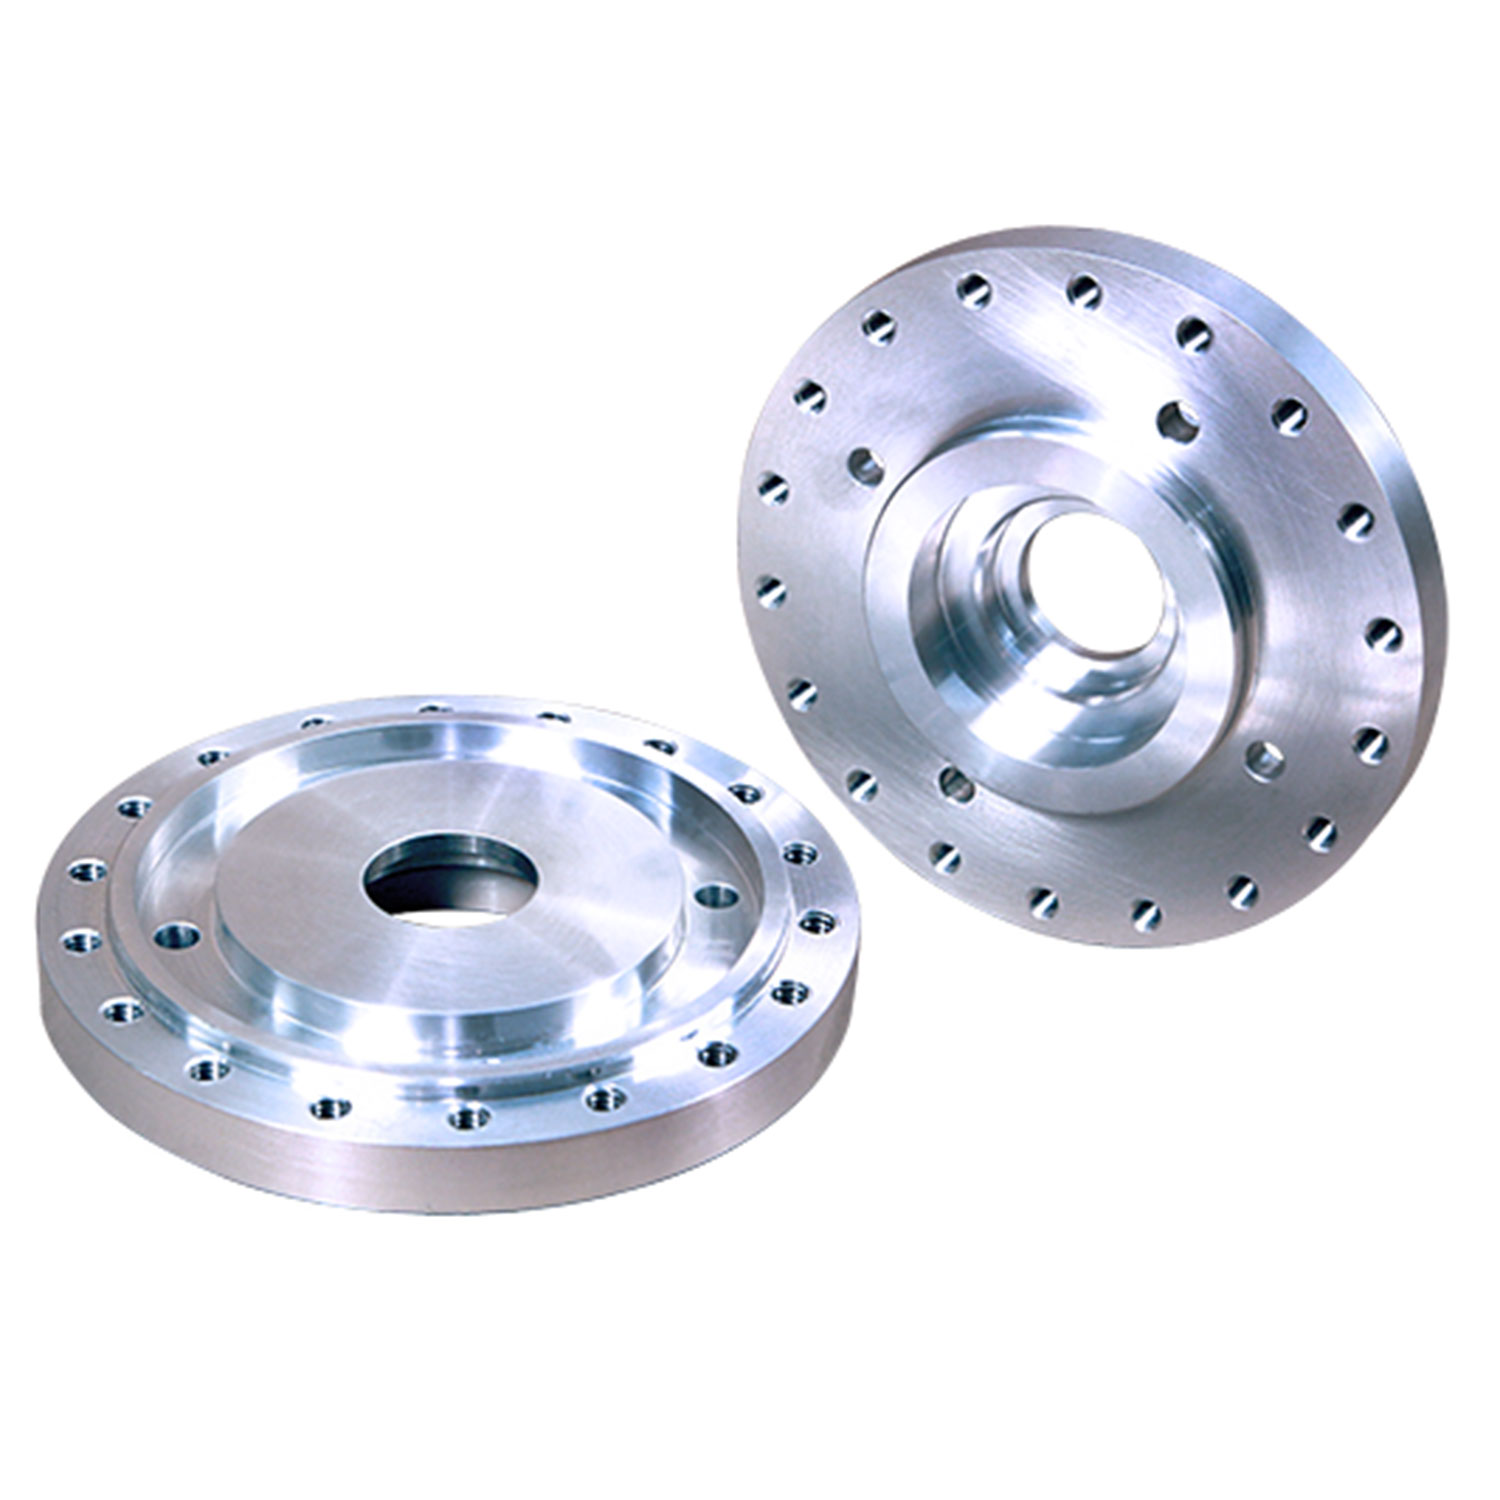 Machined Aluminum